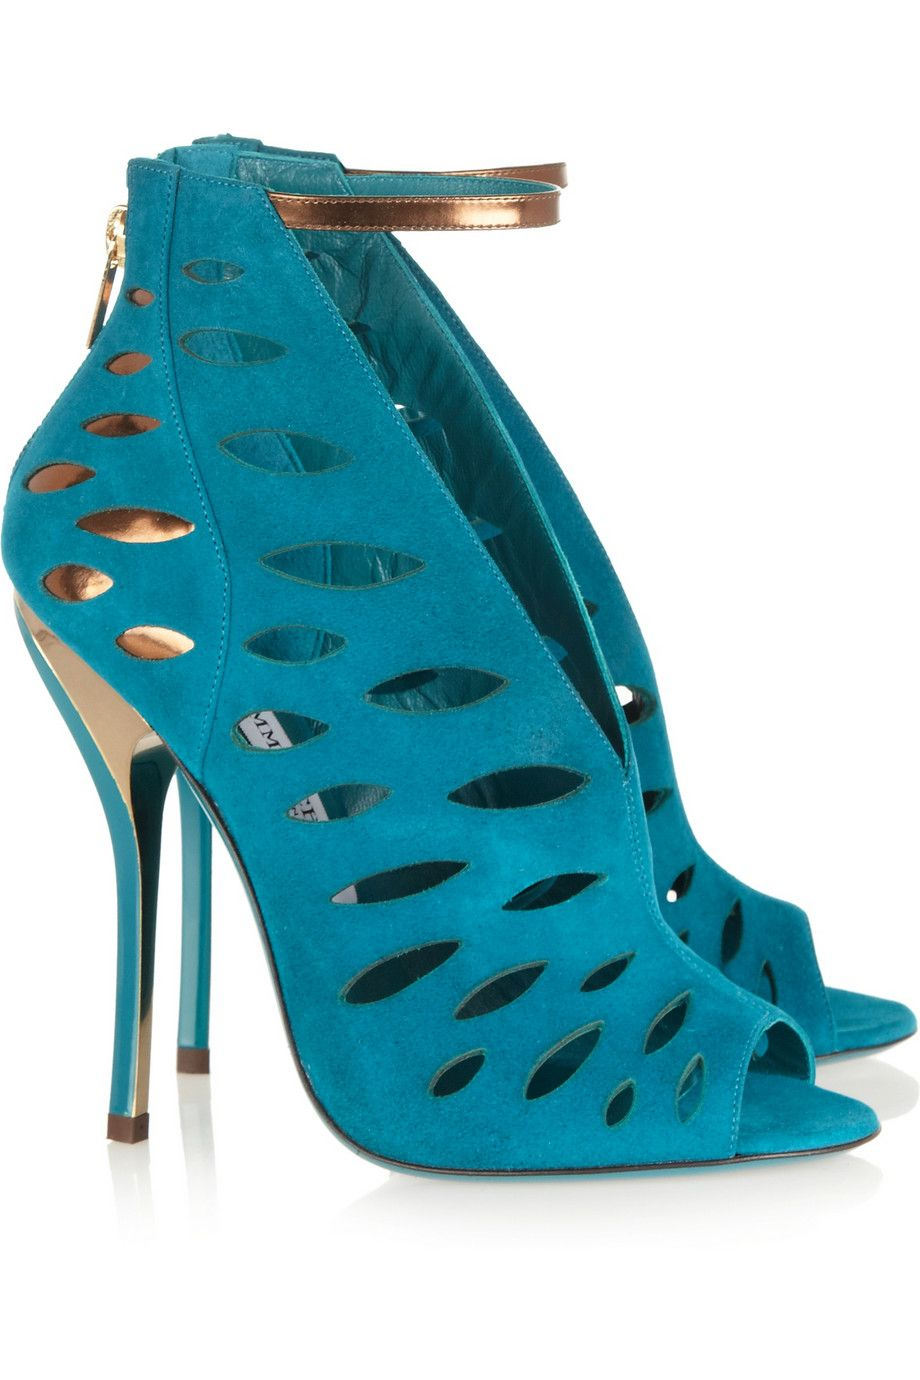 Jimmy Choo Tamber cutout suede and metallic leather sandals NET-A-PORTER.COM